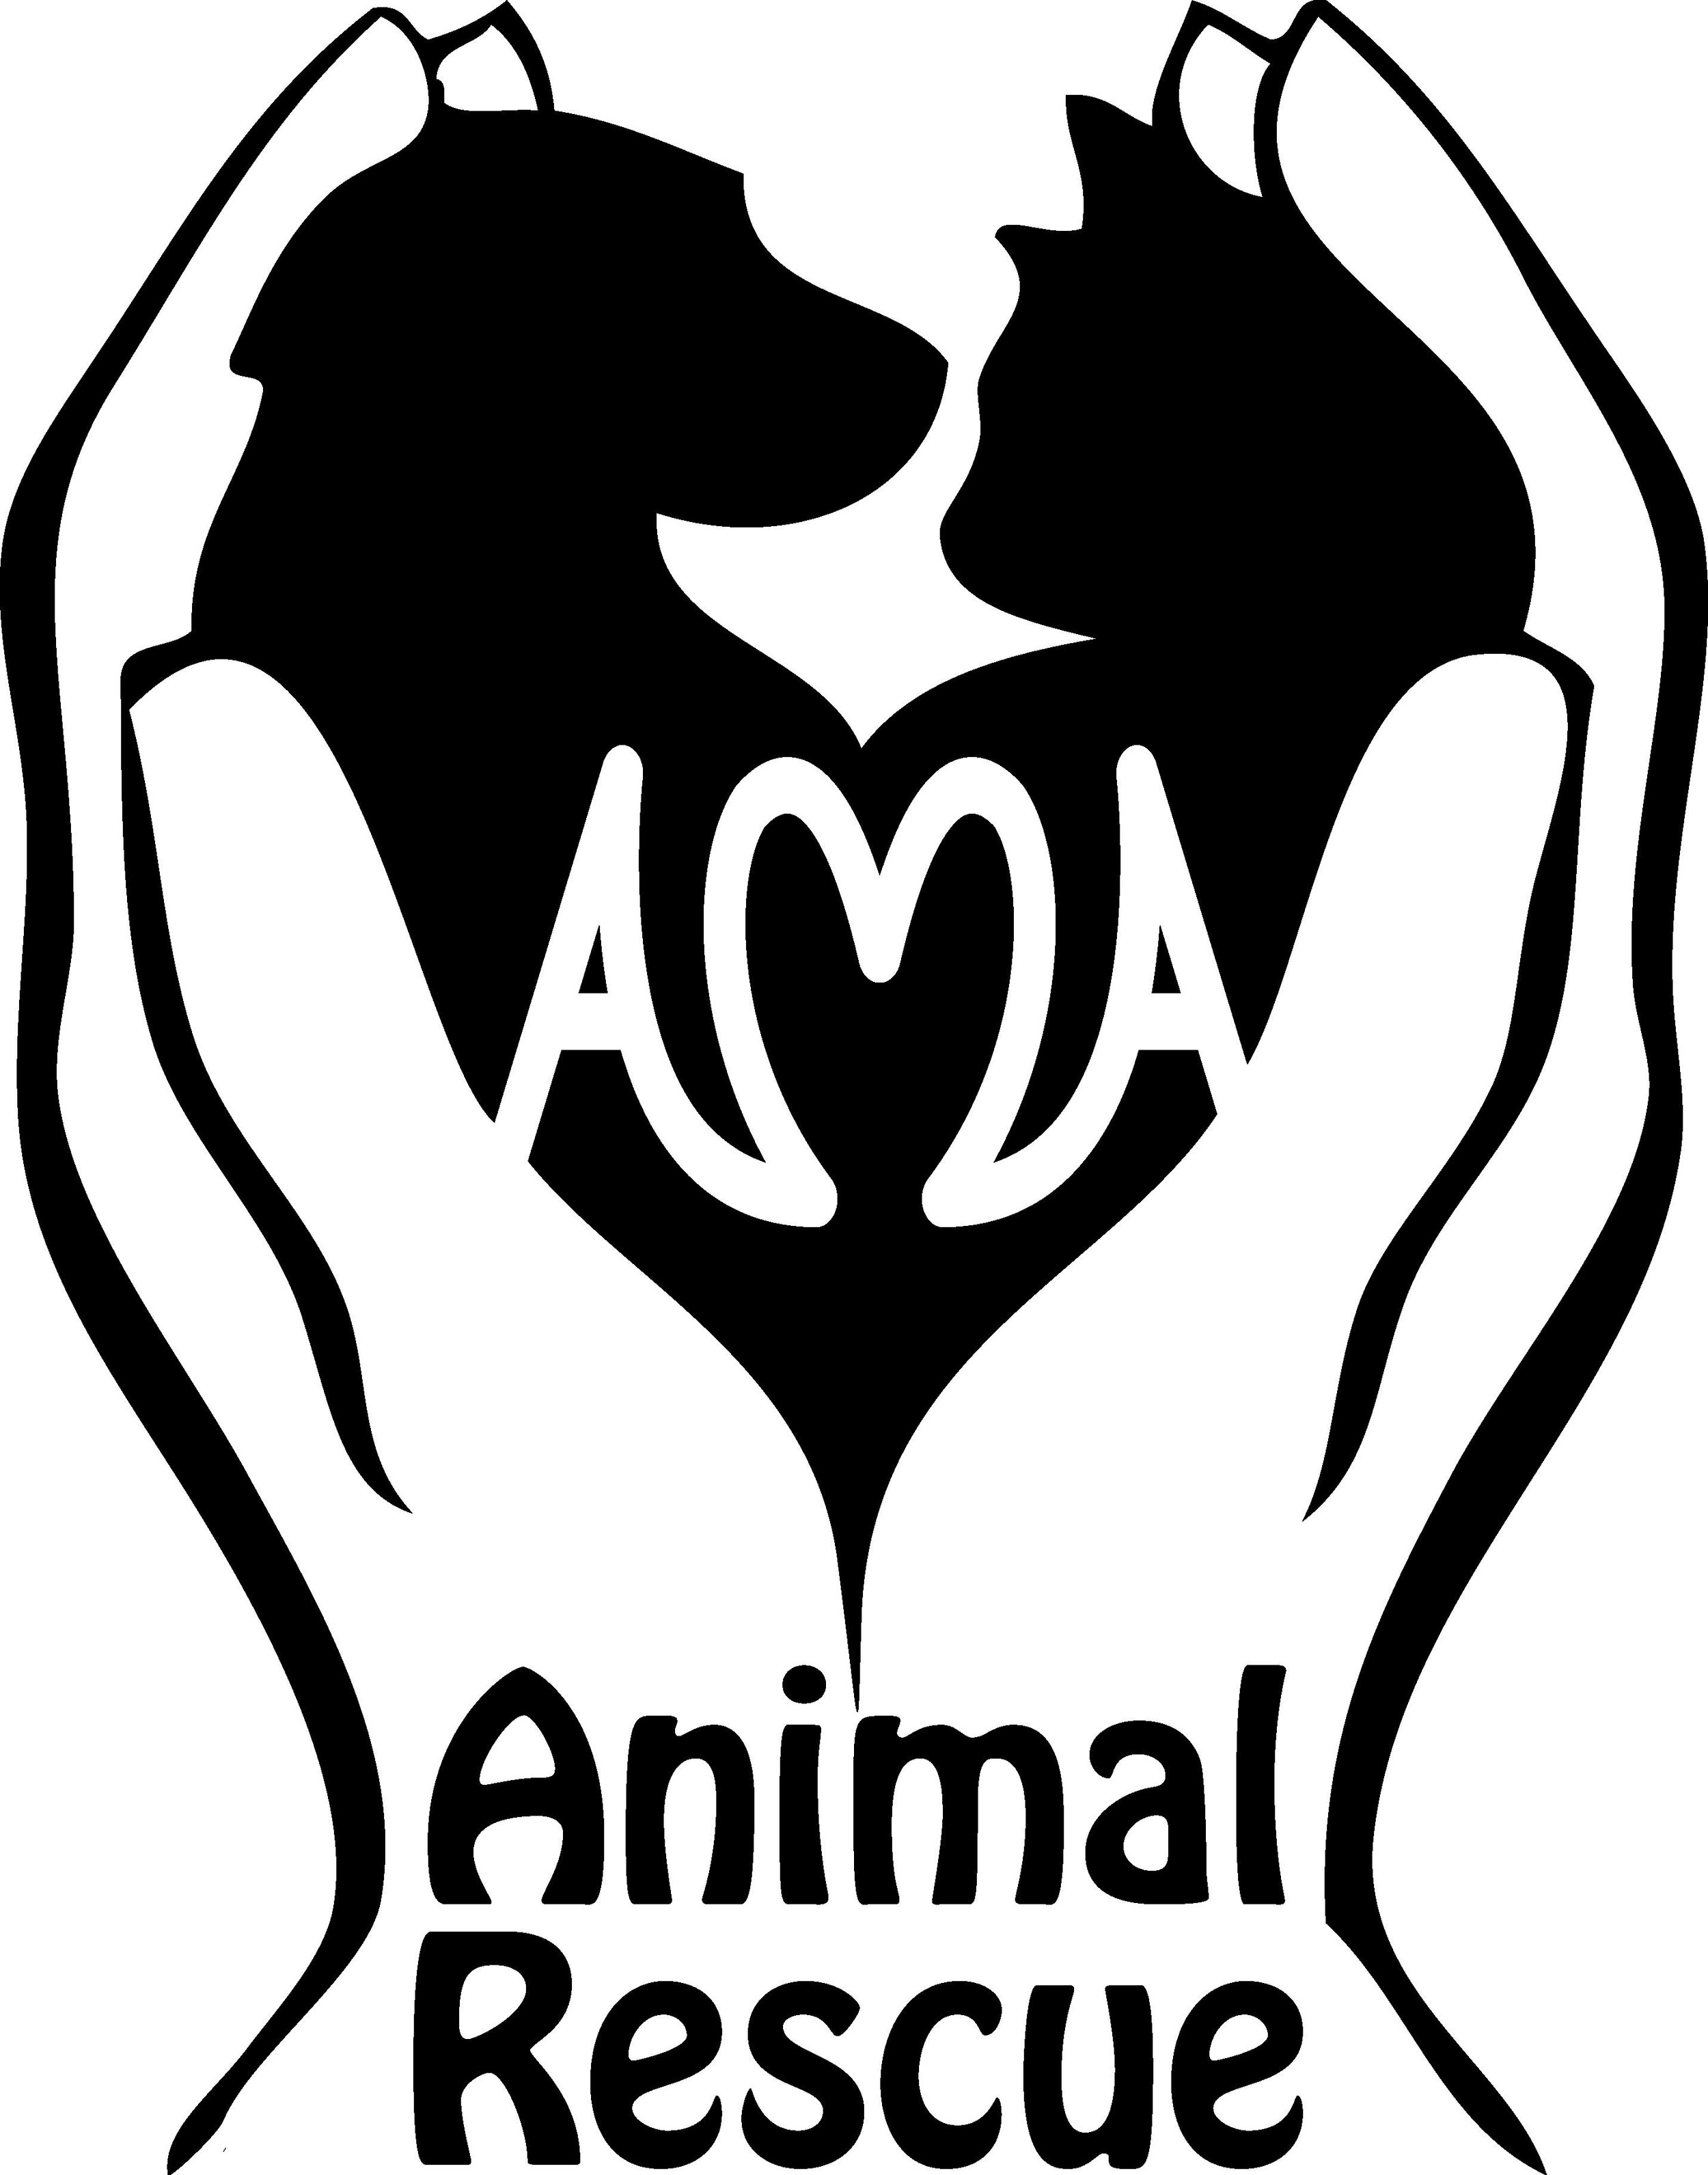 AMA Animal Rescue - The mission of AMA Animal Rescue is to stop the daily slaughter of young and healthy cats and dogs by helping to save, foster and find homes for them.